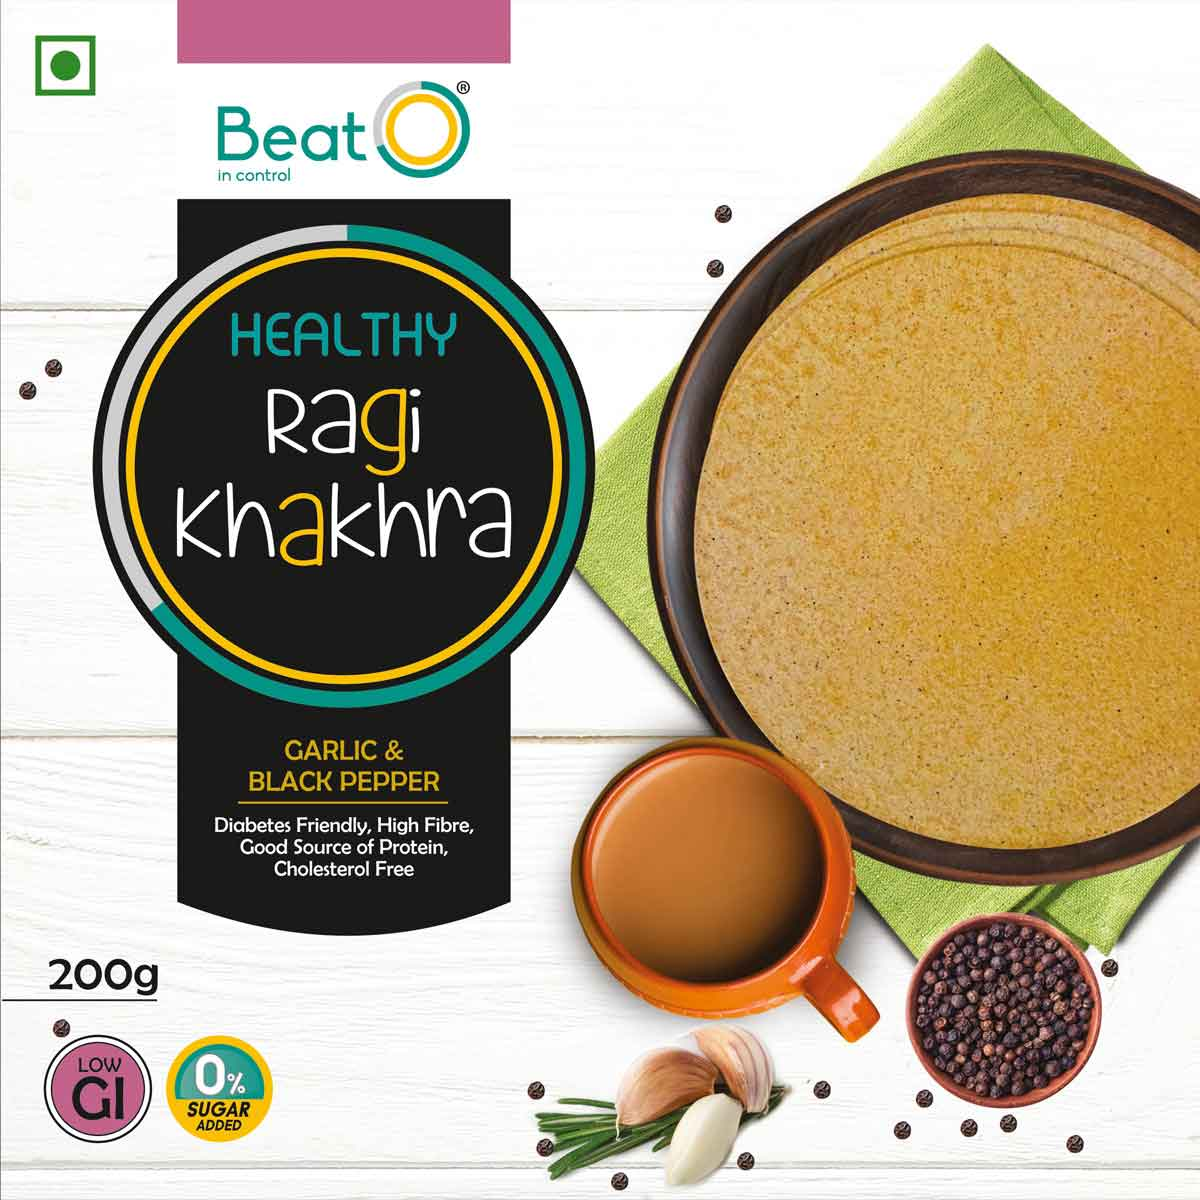 Ragi Khakhra - Garlic and Black Pepper